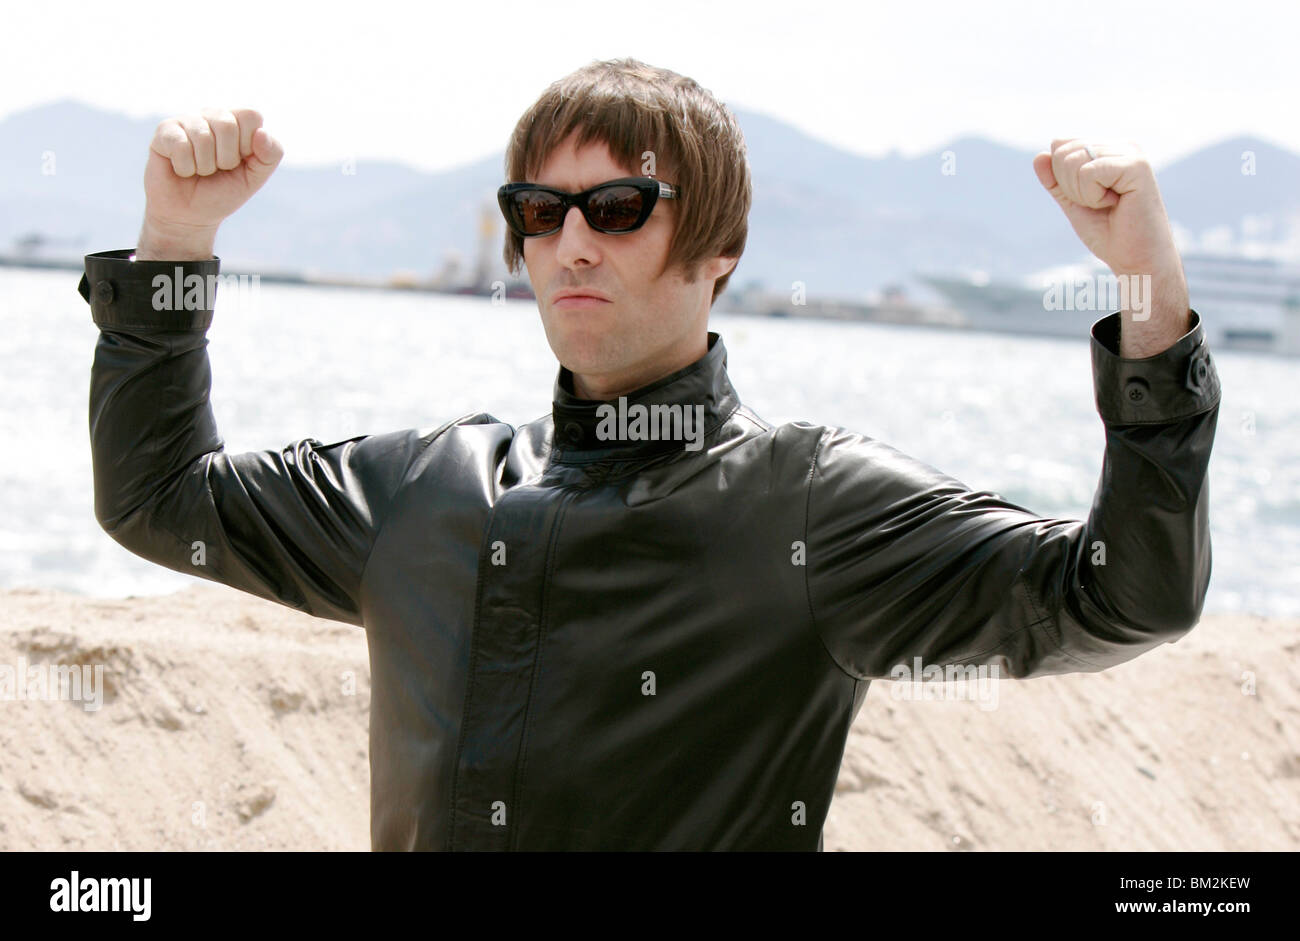 LIAM GALLAGHER THE LONGEST COCKTAIL PARTY PHOTOCALL PALAIS DES FESTIVALS CANNES FRANCE 14 May 2010 - Stock Image